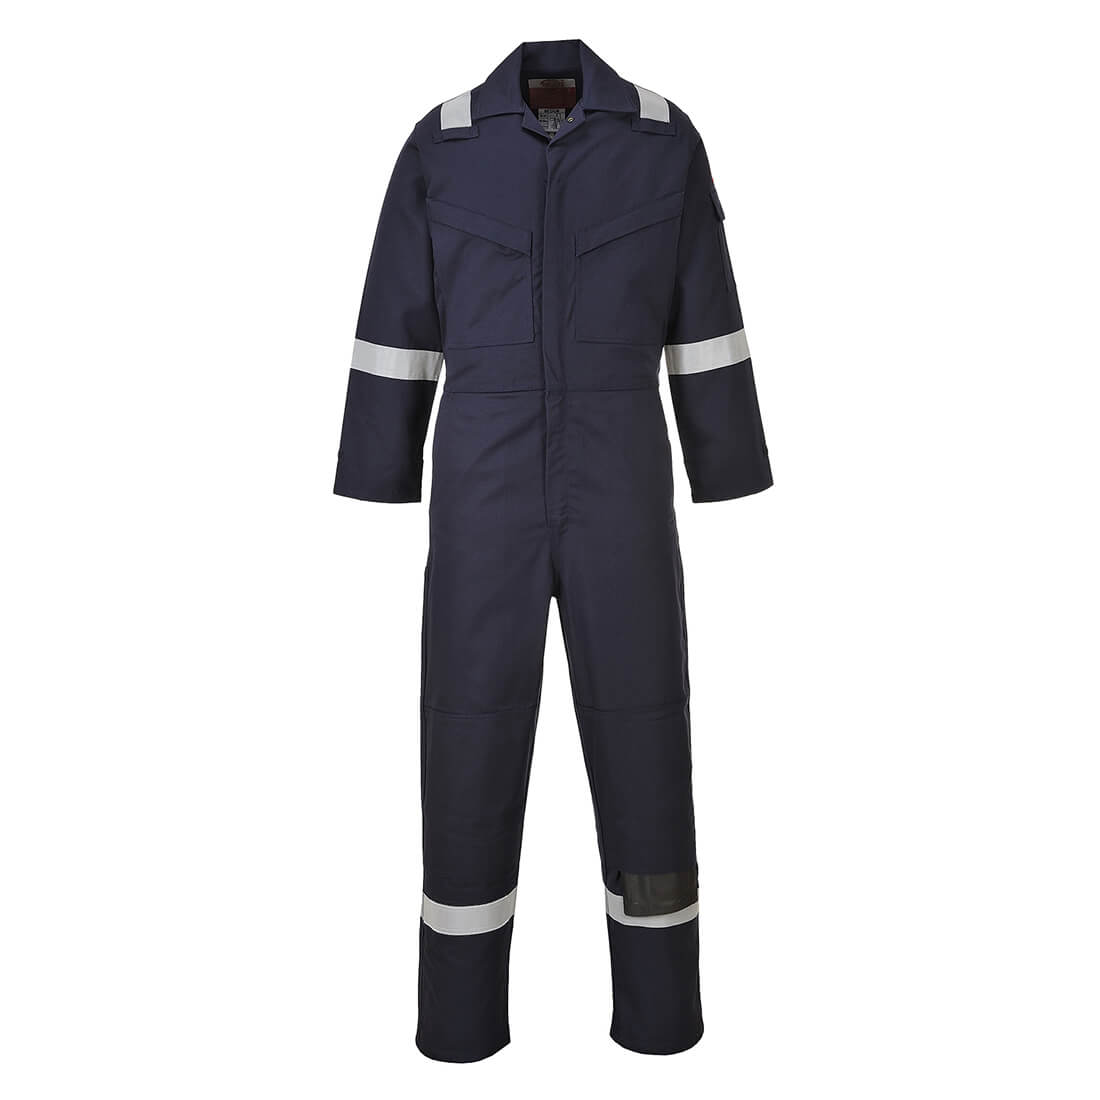 Image of Biz Flame Aberdeen Flame Resistant Antistatic Coverall Navy Blue 2XL 34""